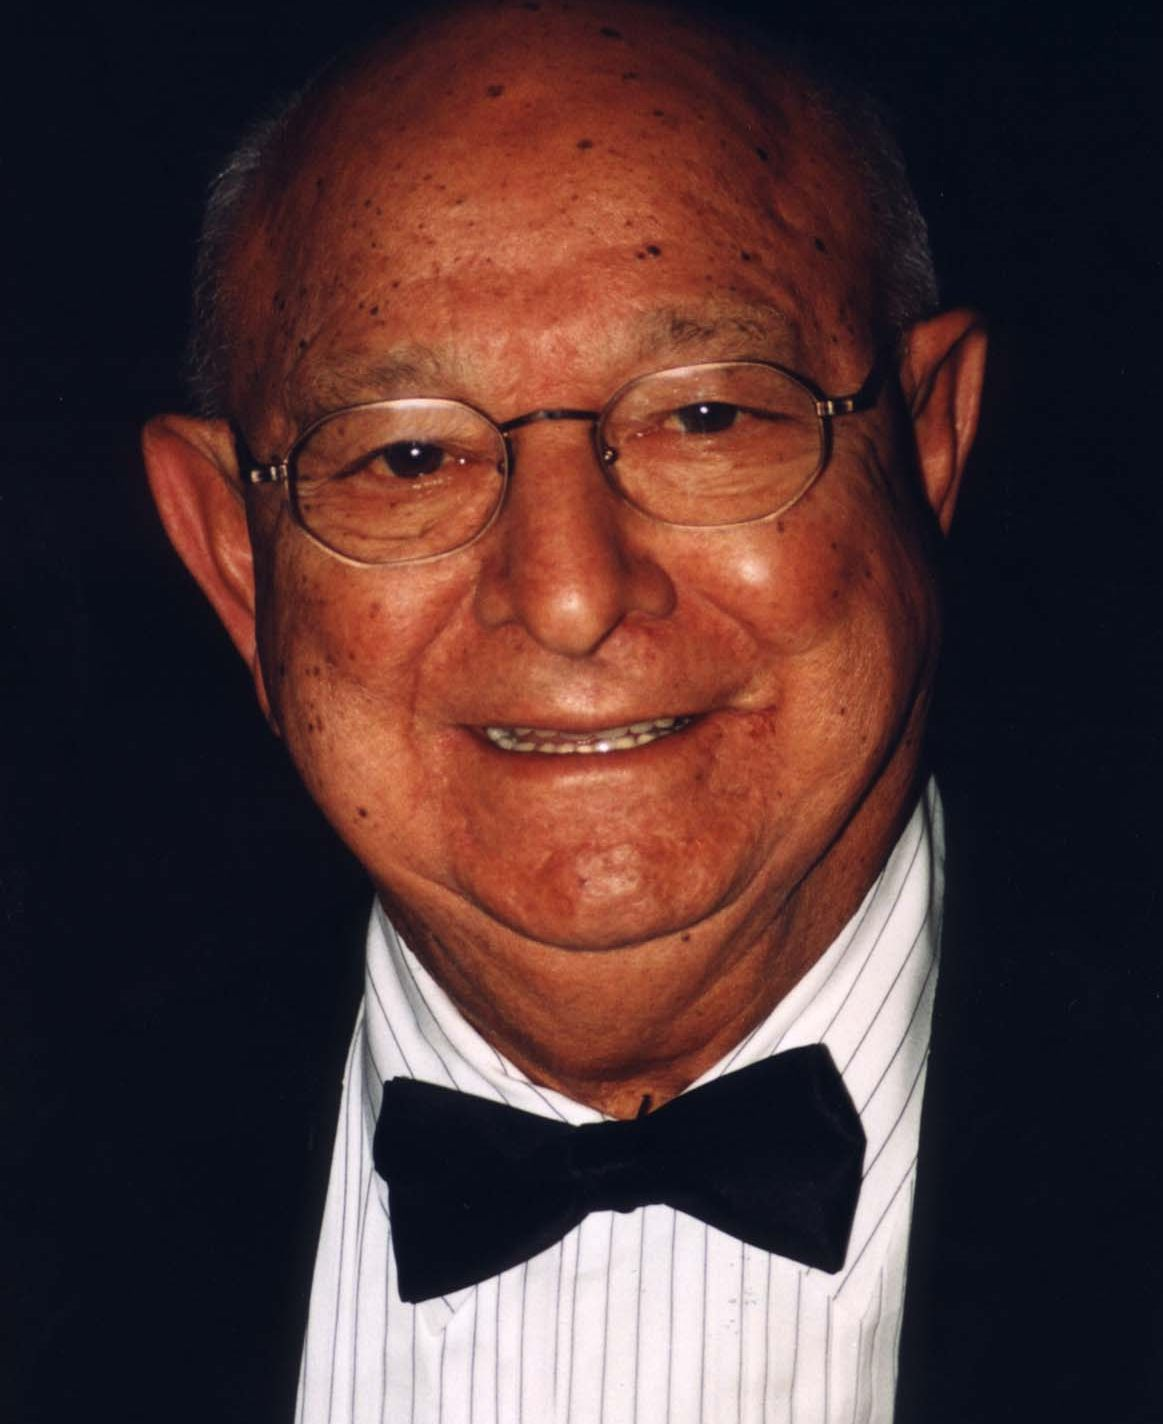 Retirement Quotes Angelo Dundee - Wikipe...